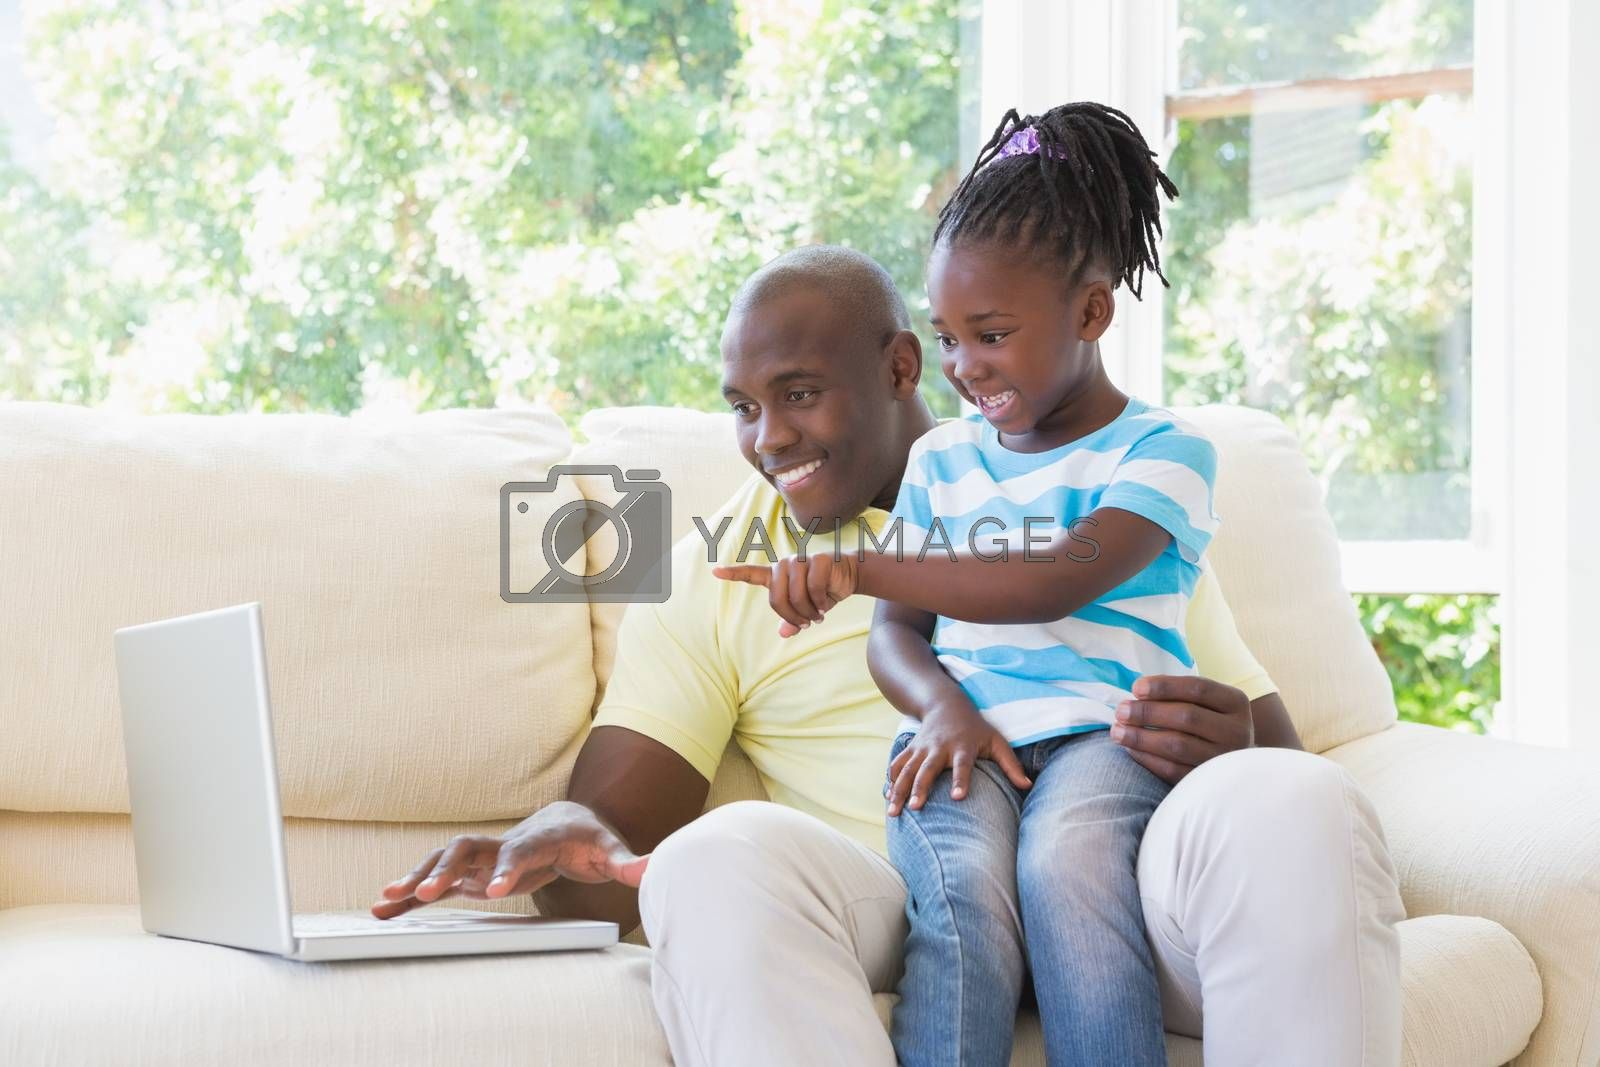 Royalty free image of Happy smiling father using laptop with her daughter on couch  by Wavebreakmedia